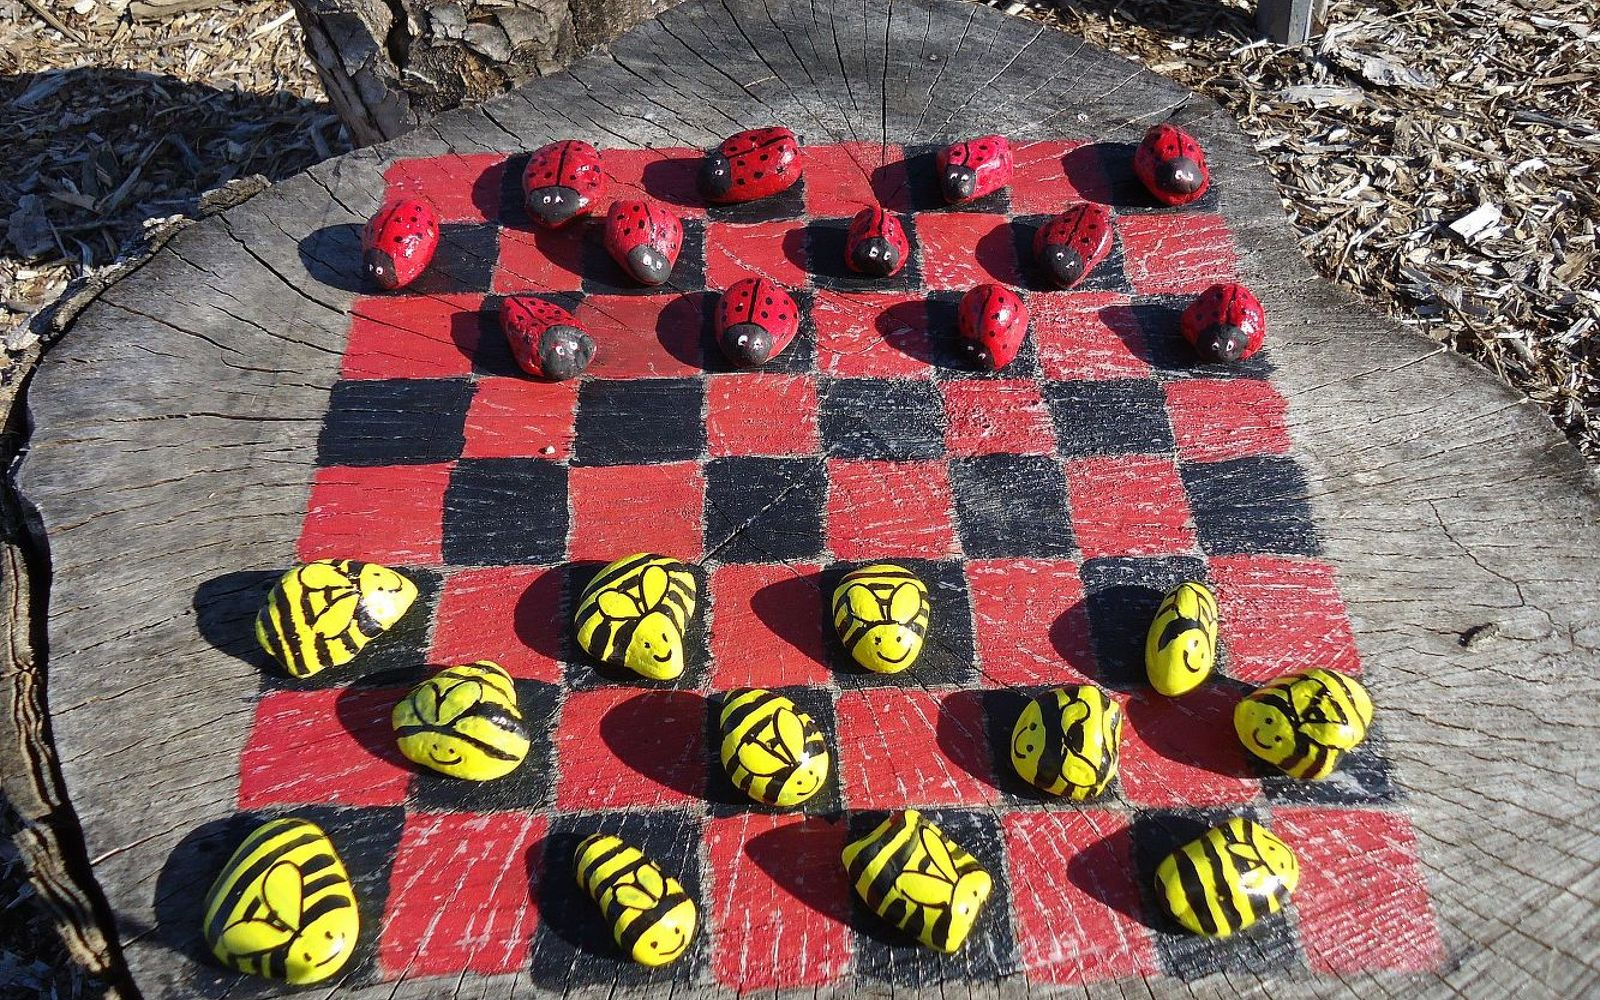 13 Crazy Fun Yard Games Your Family Will Flip for This ...